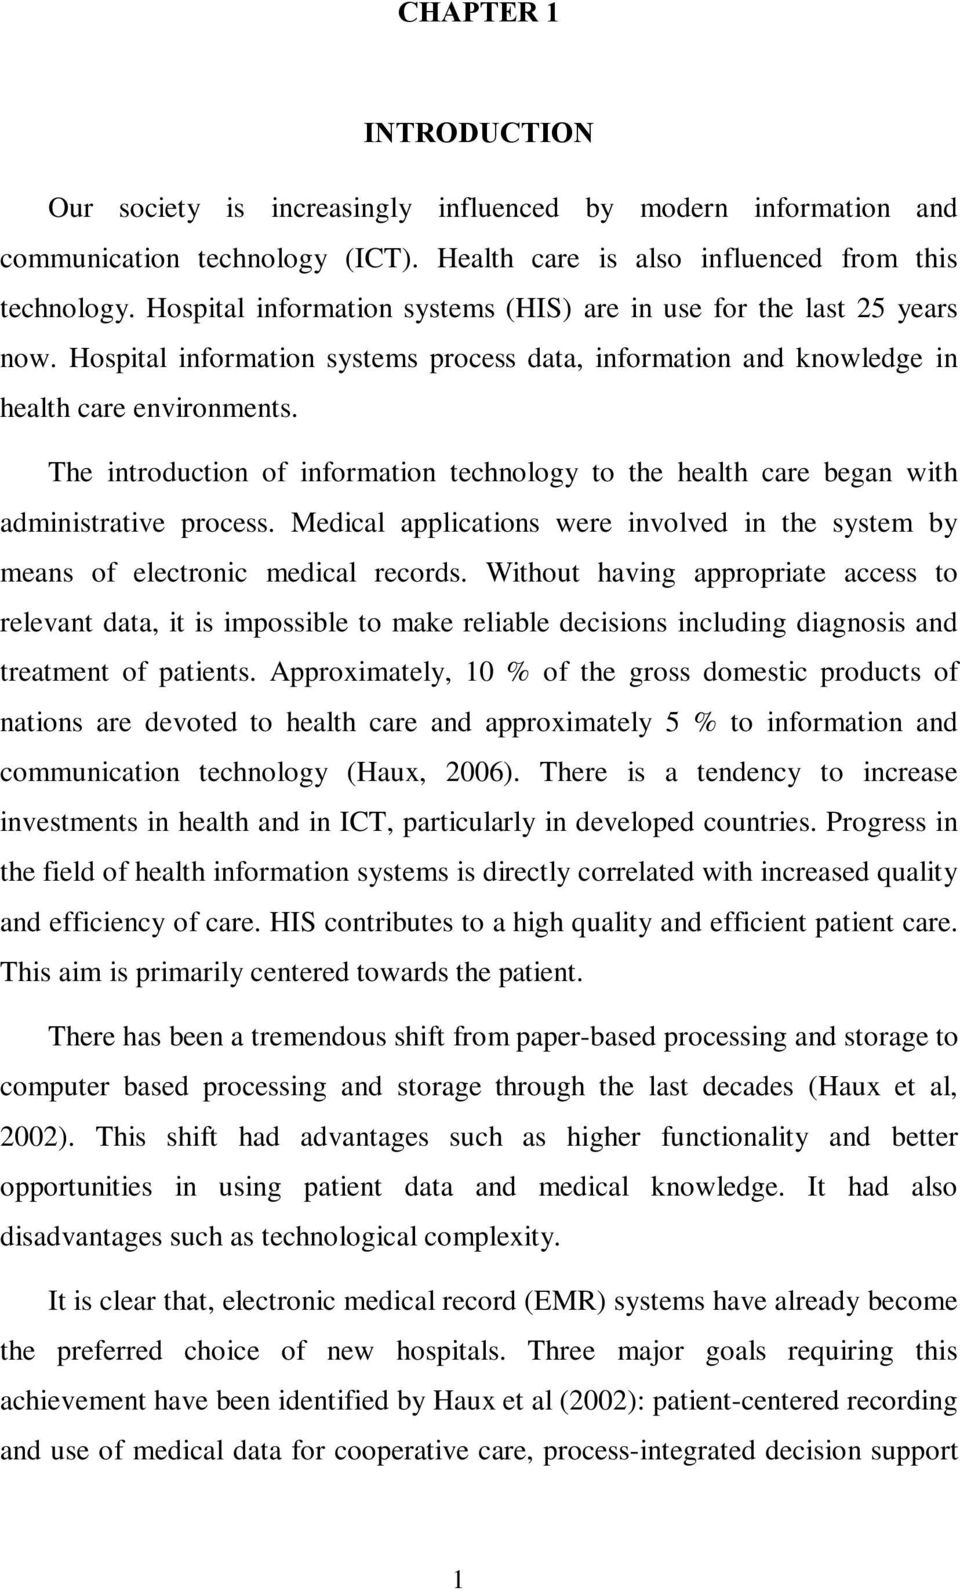 The introduction of information technology to the health care began with administrative process. Medical applications were involved in the system by means of electronic medical records.